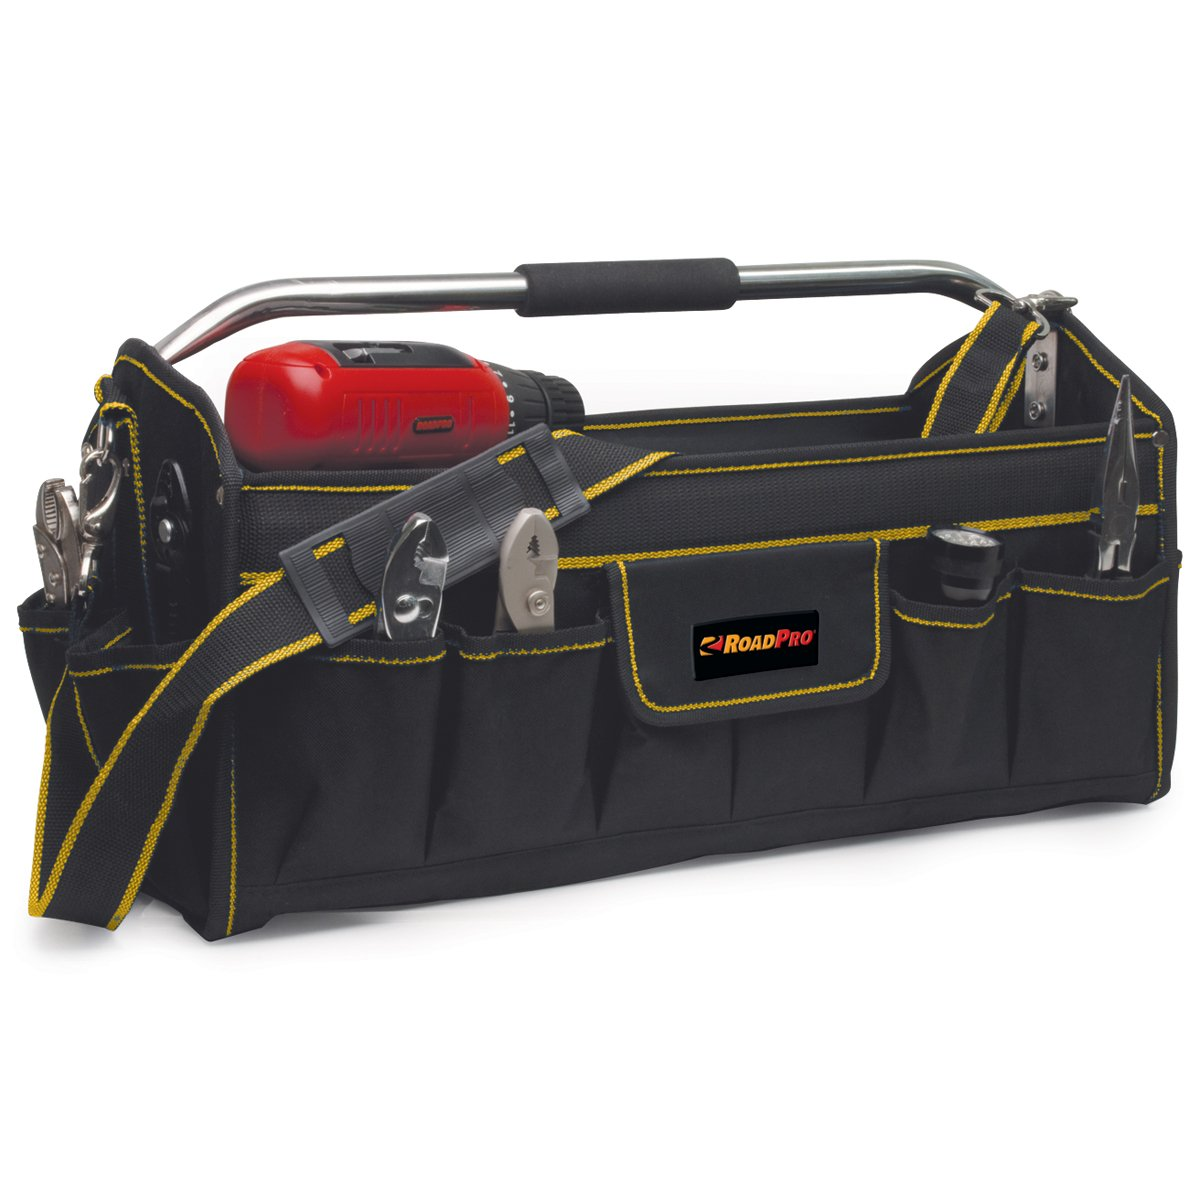 RoadPro RPTB20 Collapsible Tool Carrier//Bag